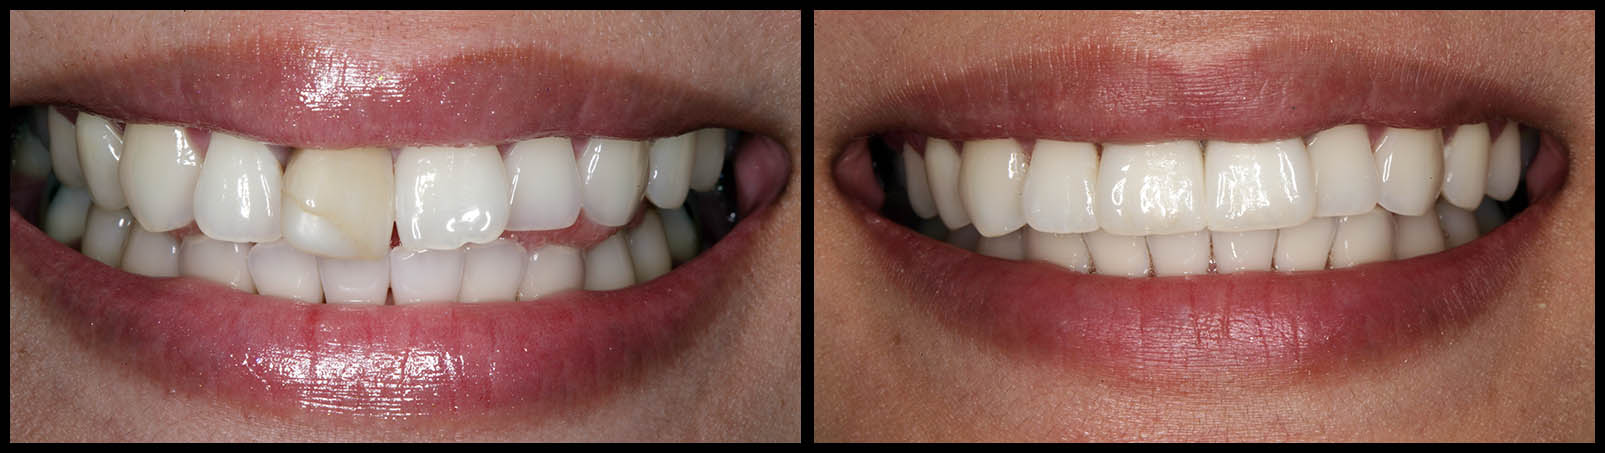 Dental Implants And Crowns   Cosmetic Dentistry Before And After   Bunker Hill Dentistry   Houston, TX